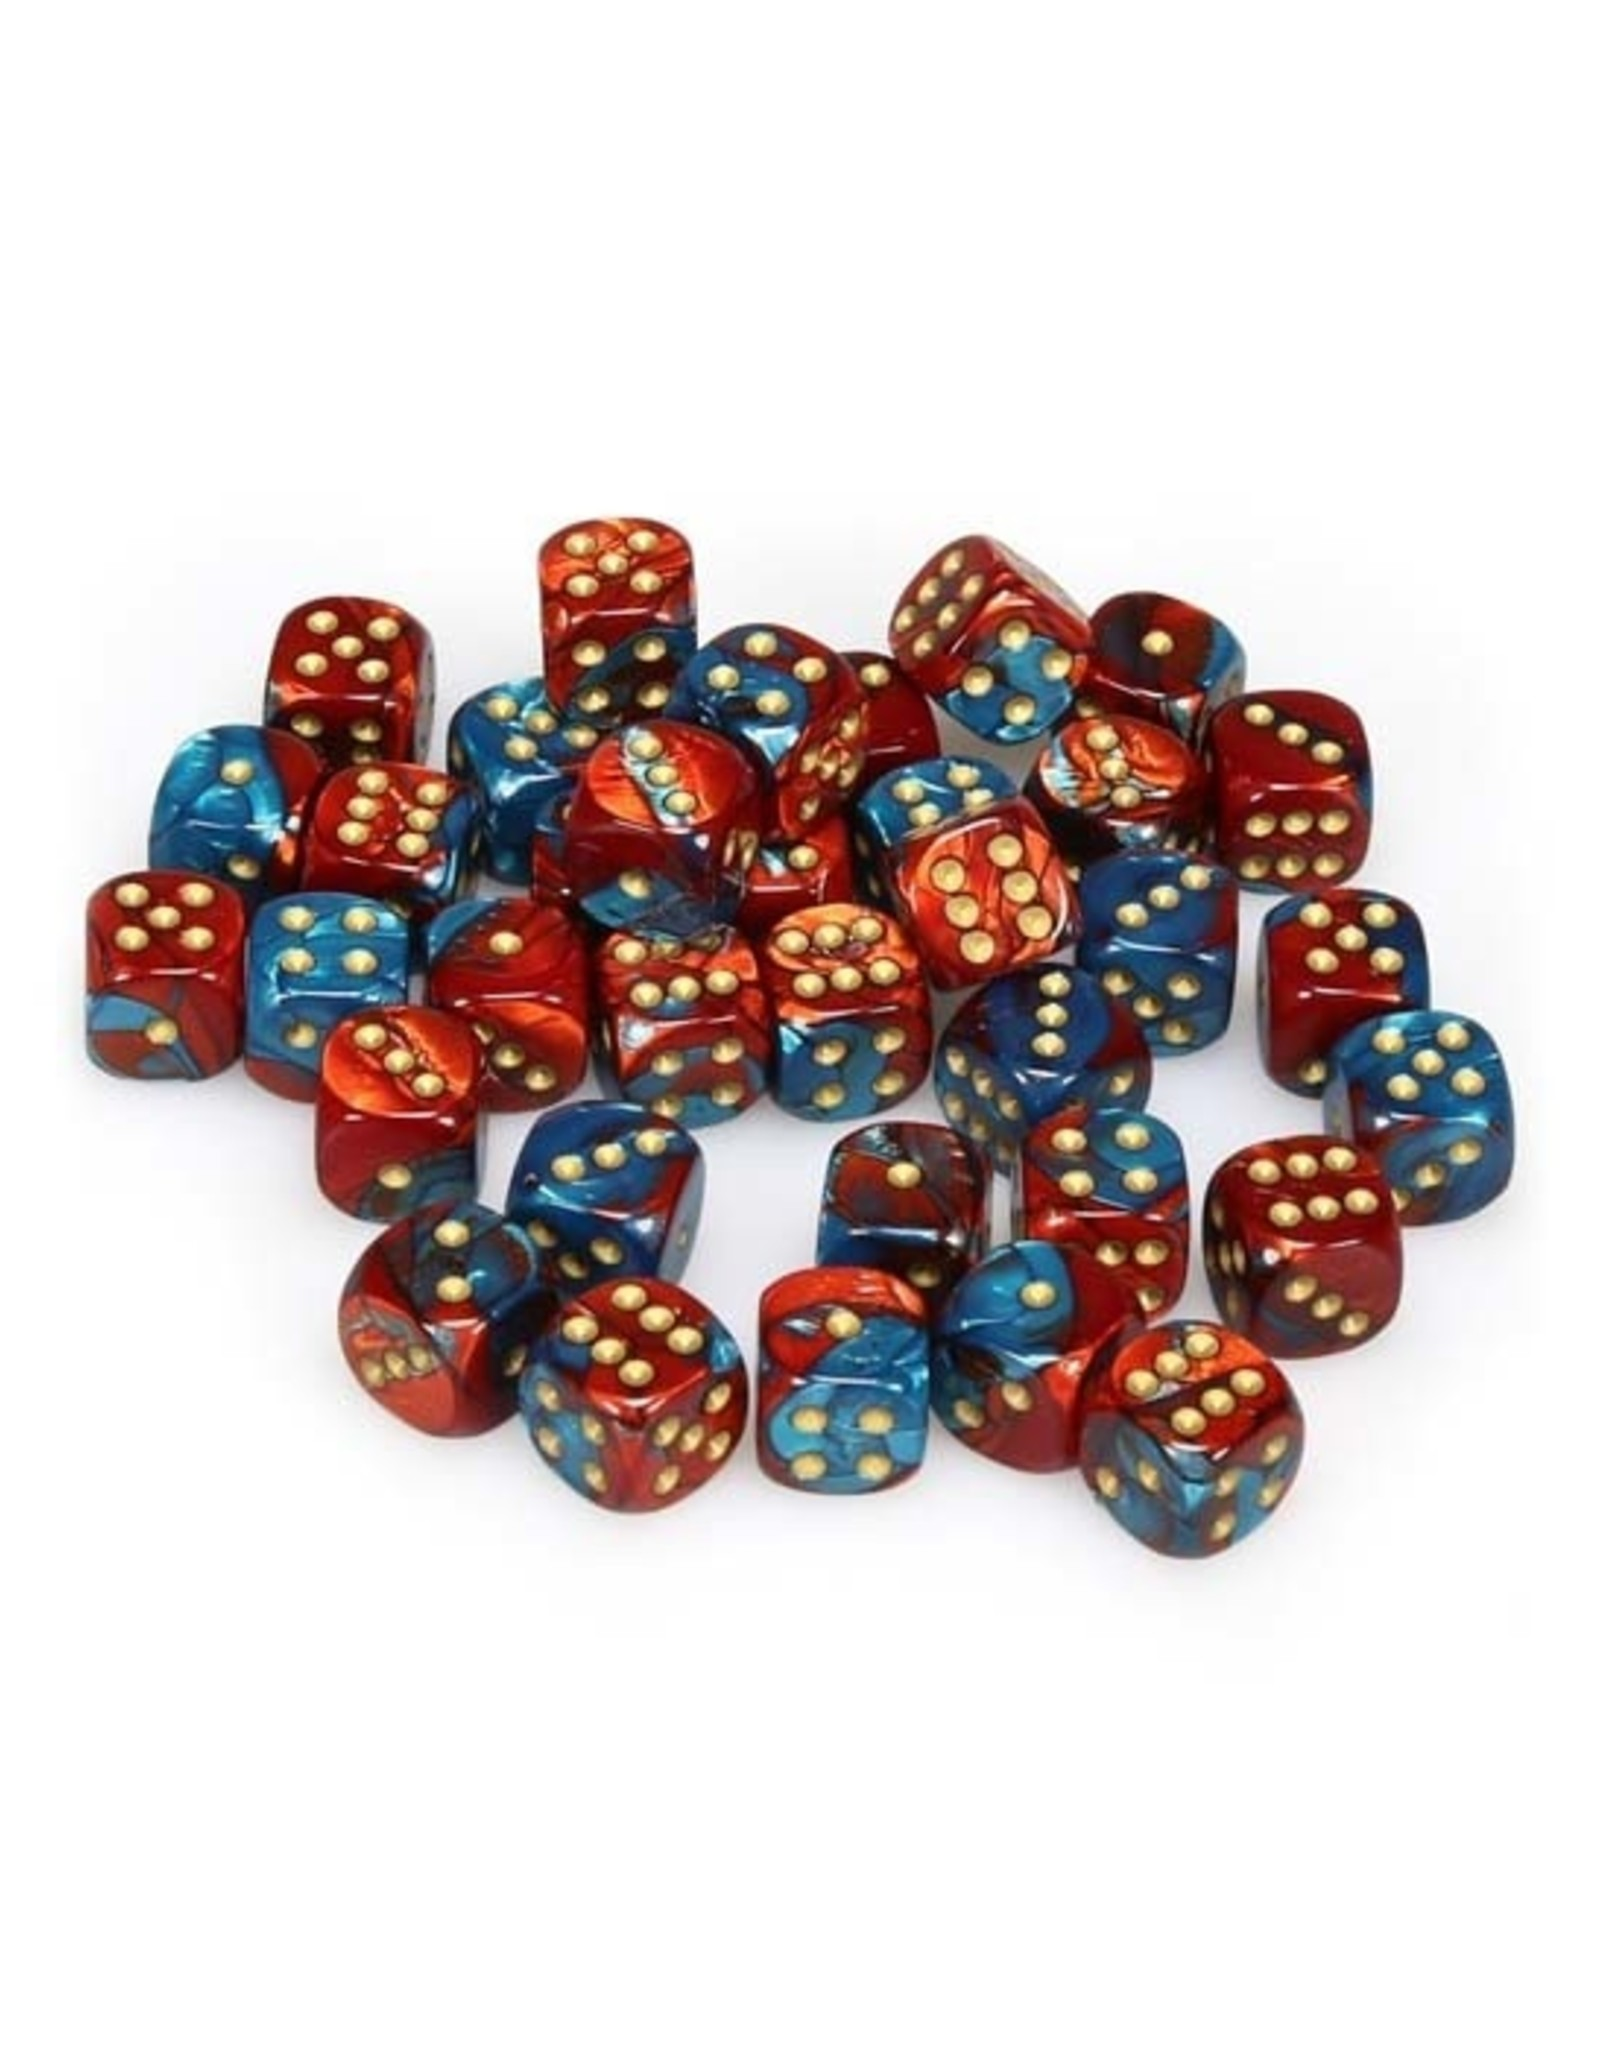 Chessex Chessex: 12mm D6 - Gemini - Red-Teal w/ Gold